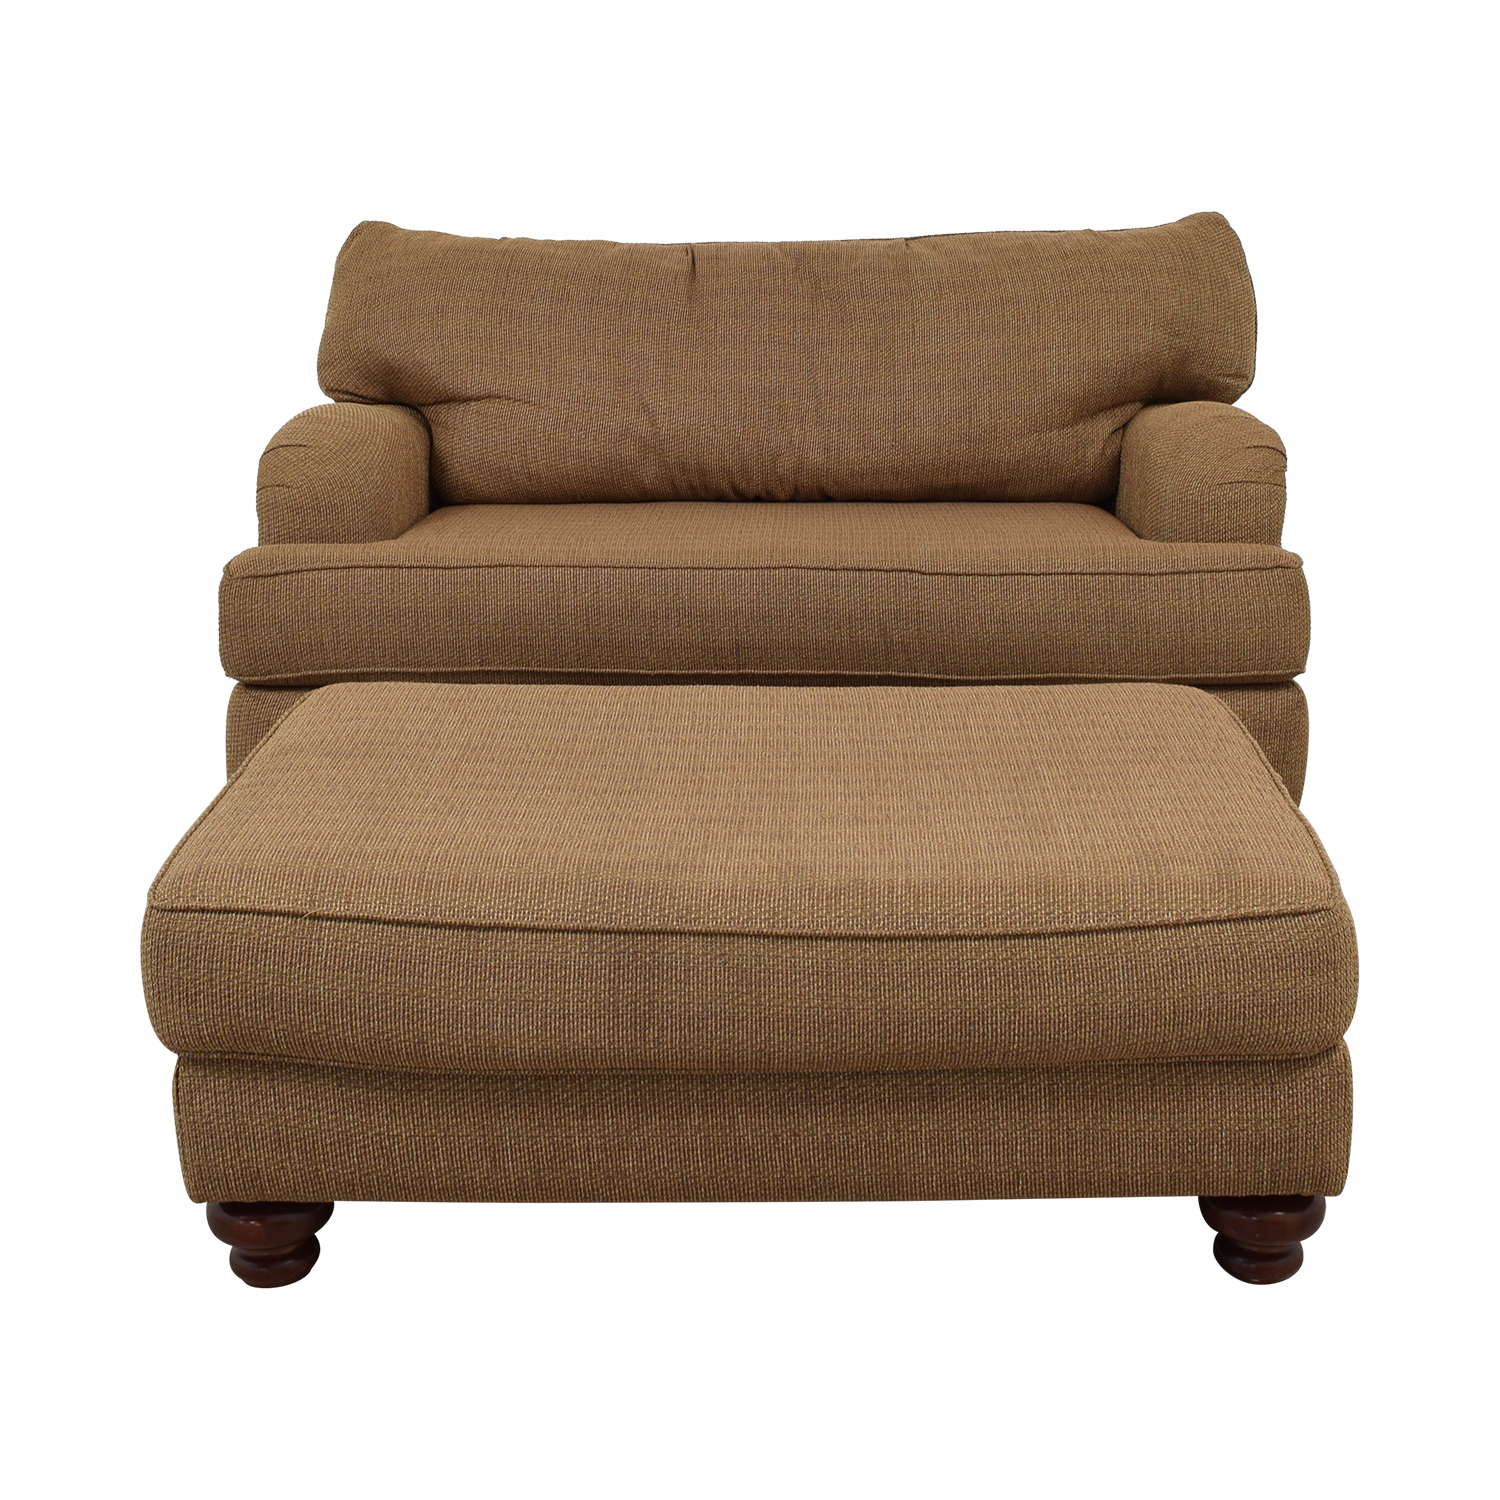 Klaussner Home Furnishings Klaussner Home Furnishings Brown Single Cushion Couch and Ottoman coupon